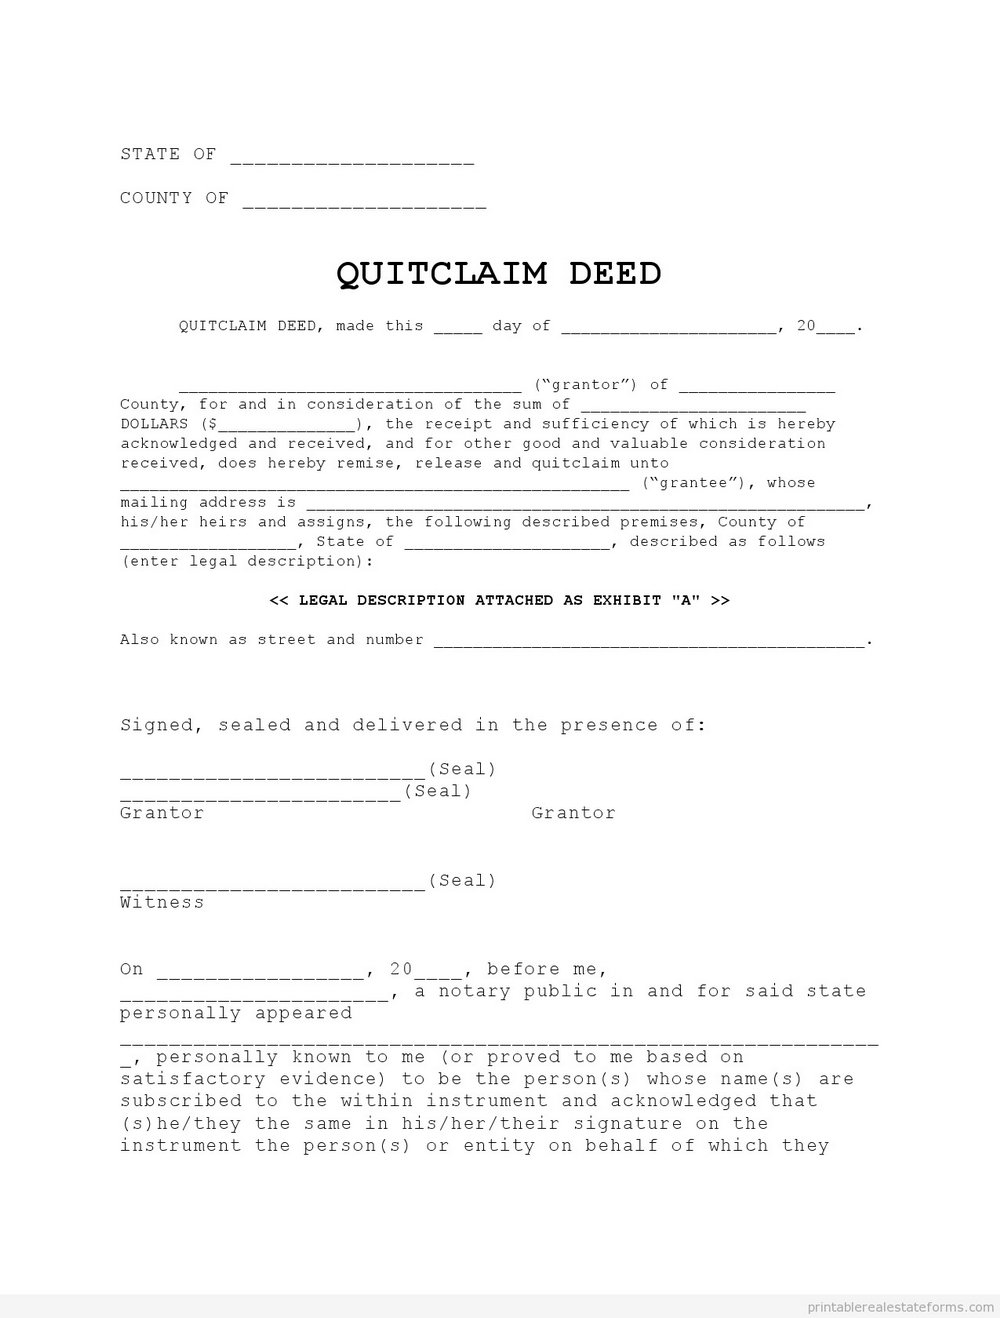 Wisconsin Quit Claim Deed Form Instructions